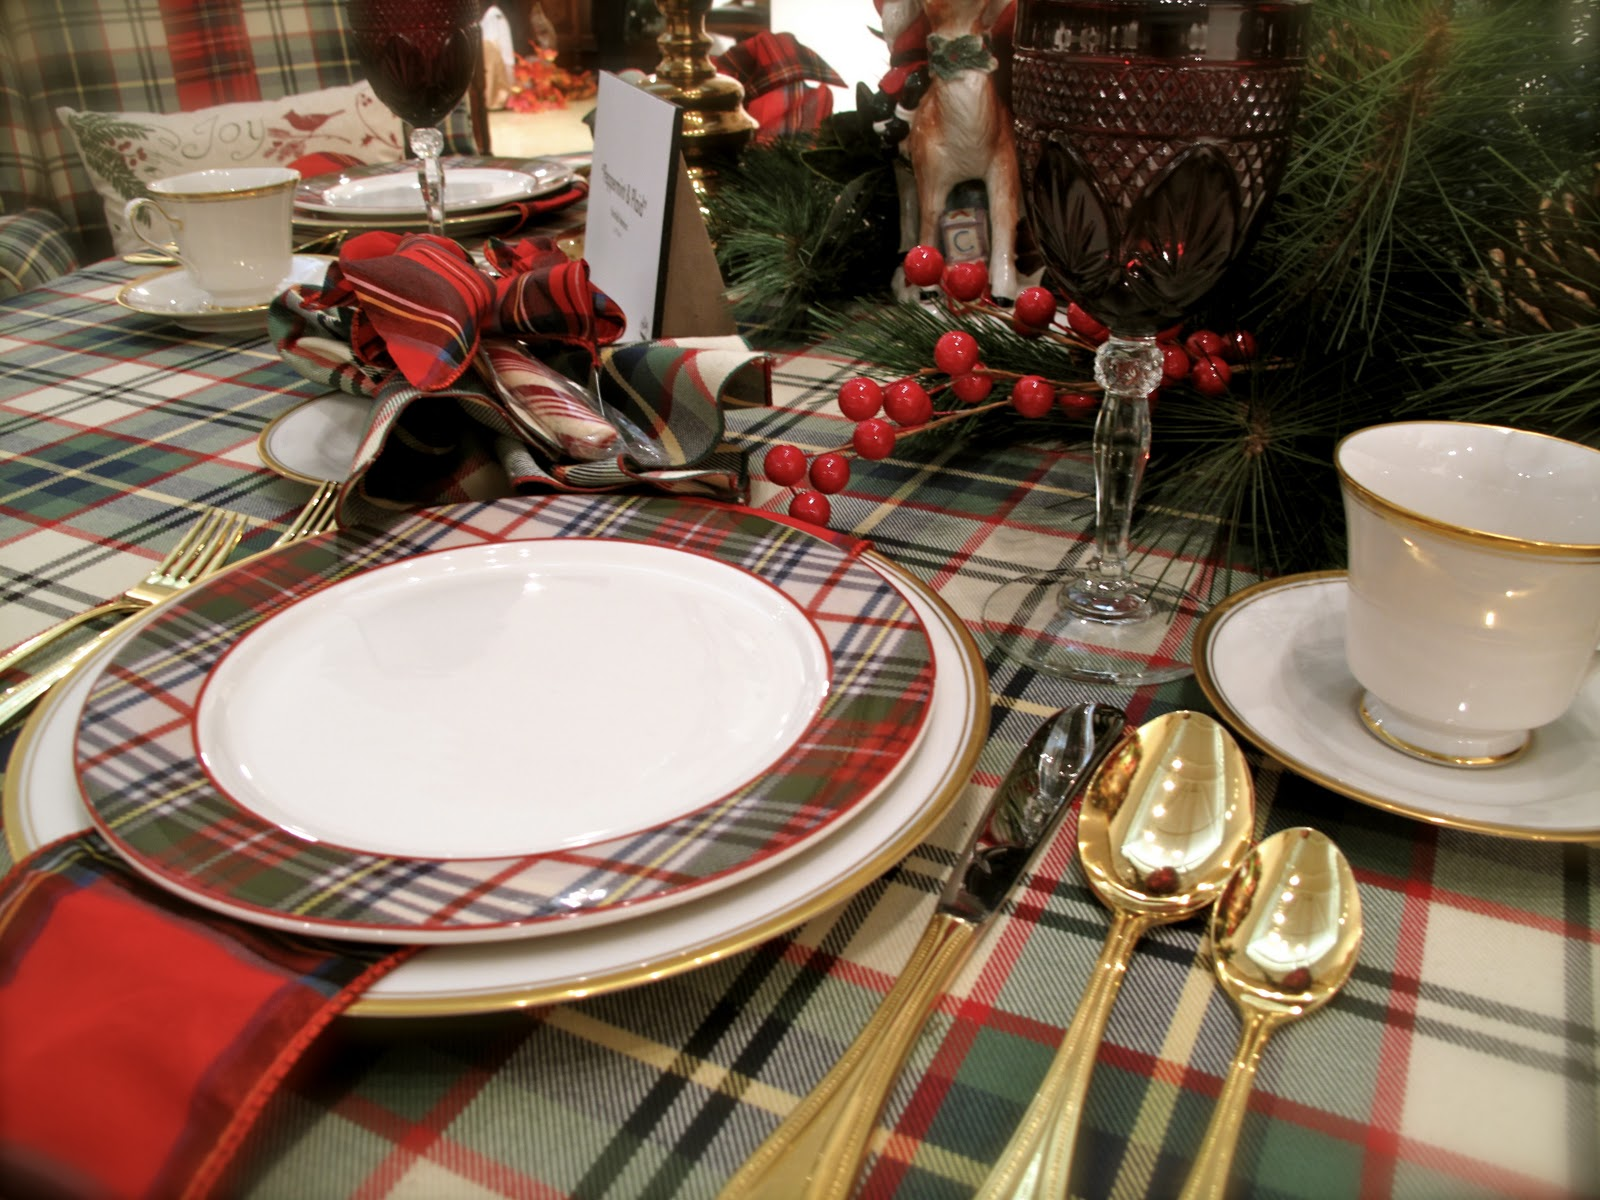 Lbs Of Flesh Tartan On The Table - Christmas tartan table decoration